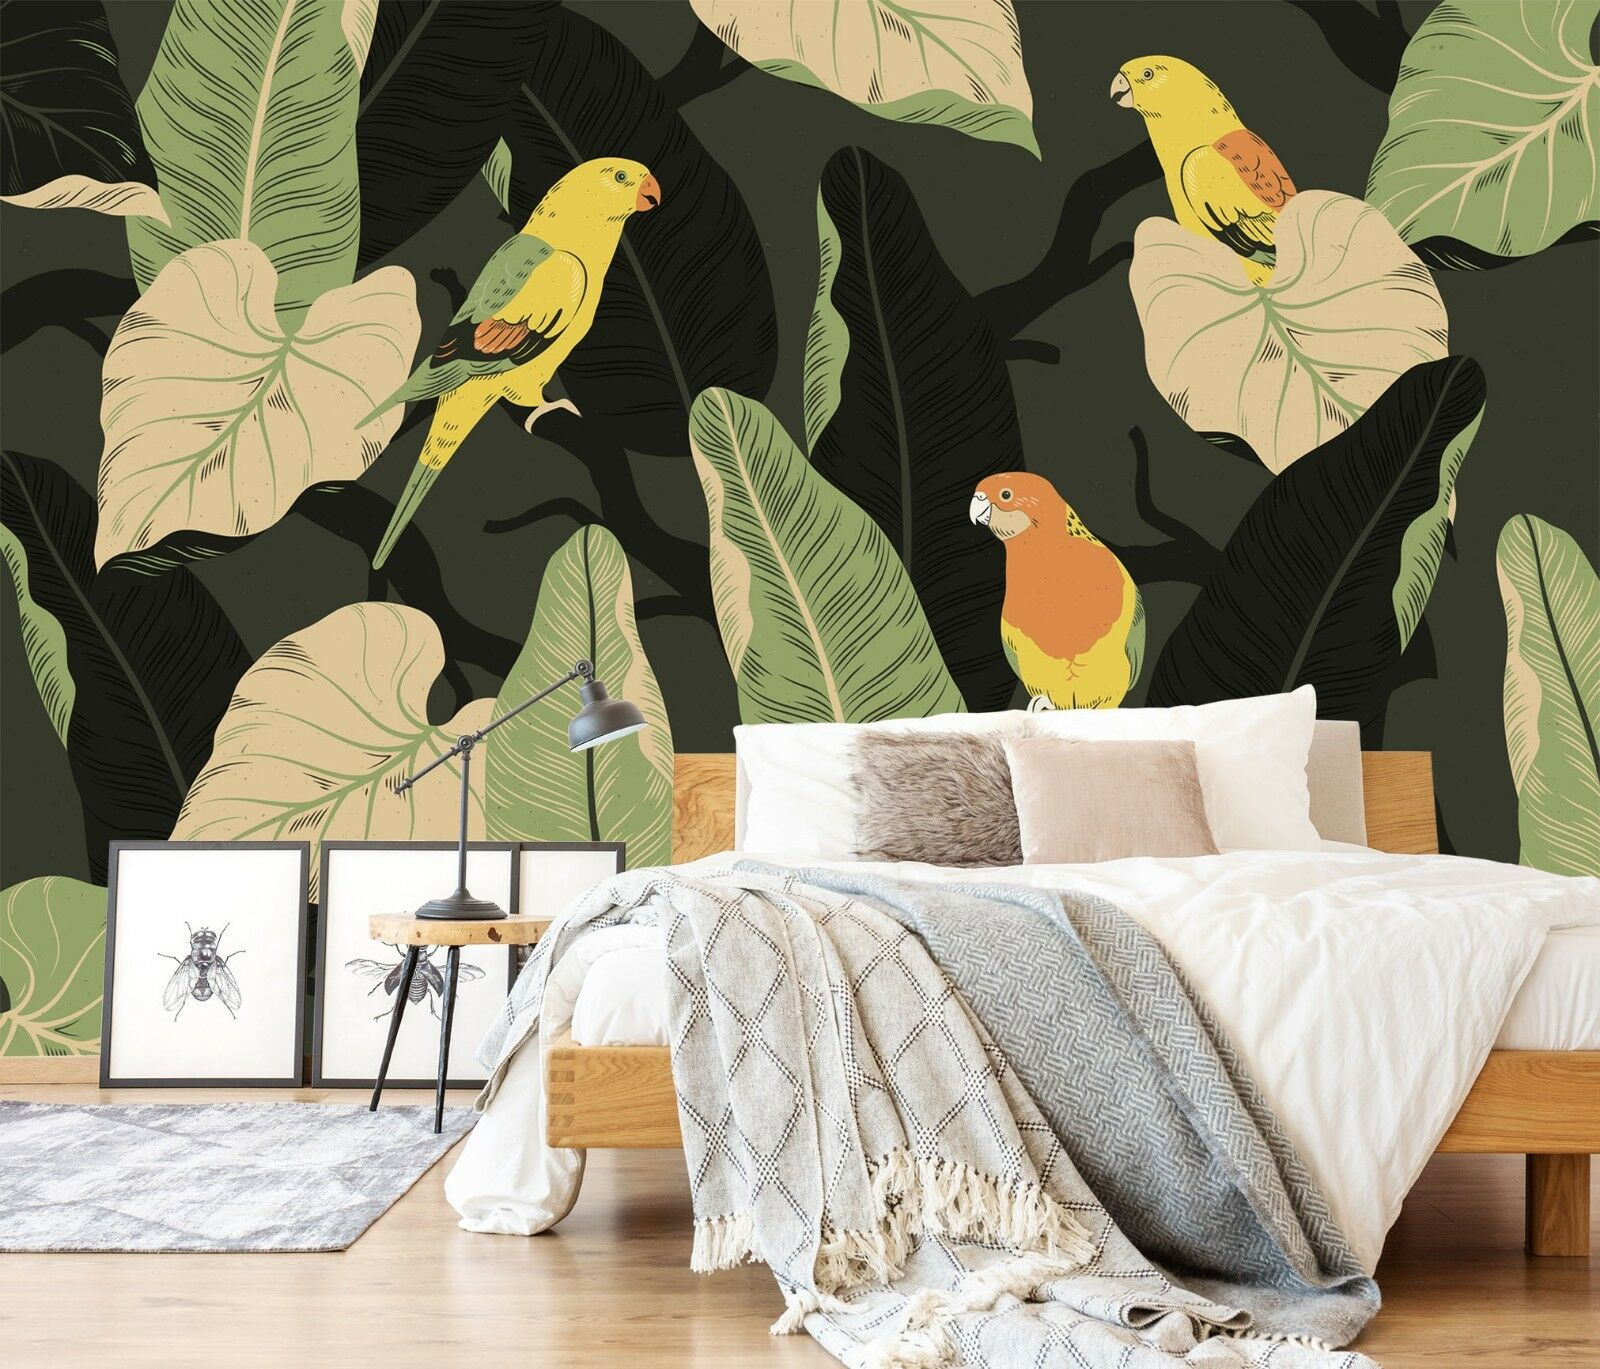 3D Parred Leaf 90 wall Paper Exclusive MXY Wallpaper Mural Decal Indoor Wall